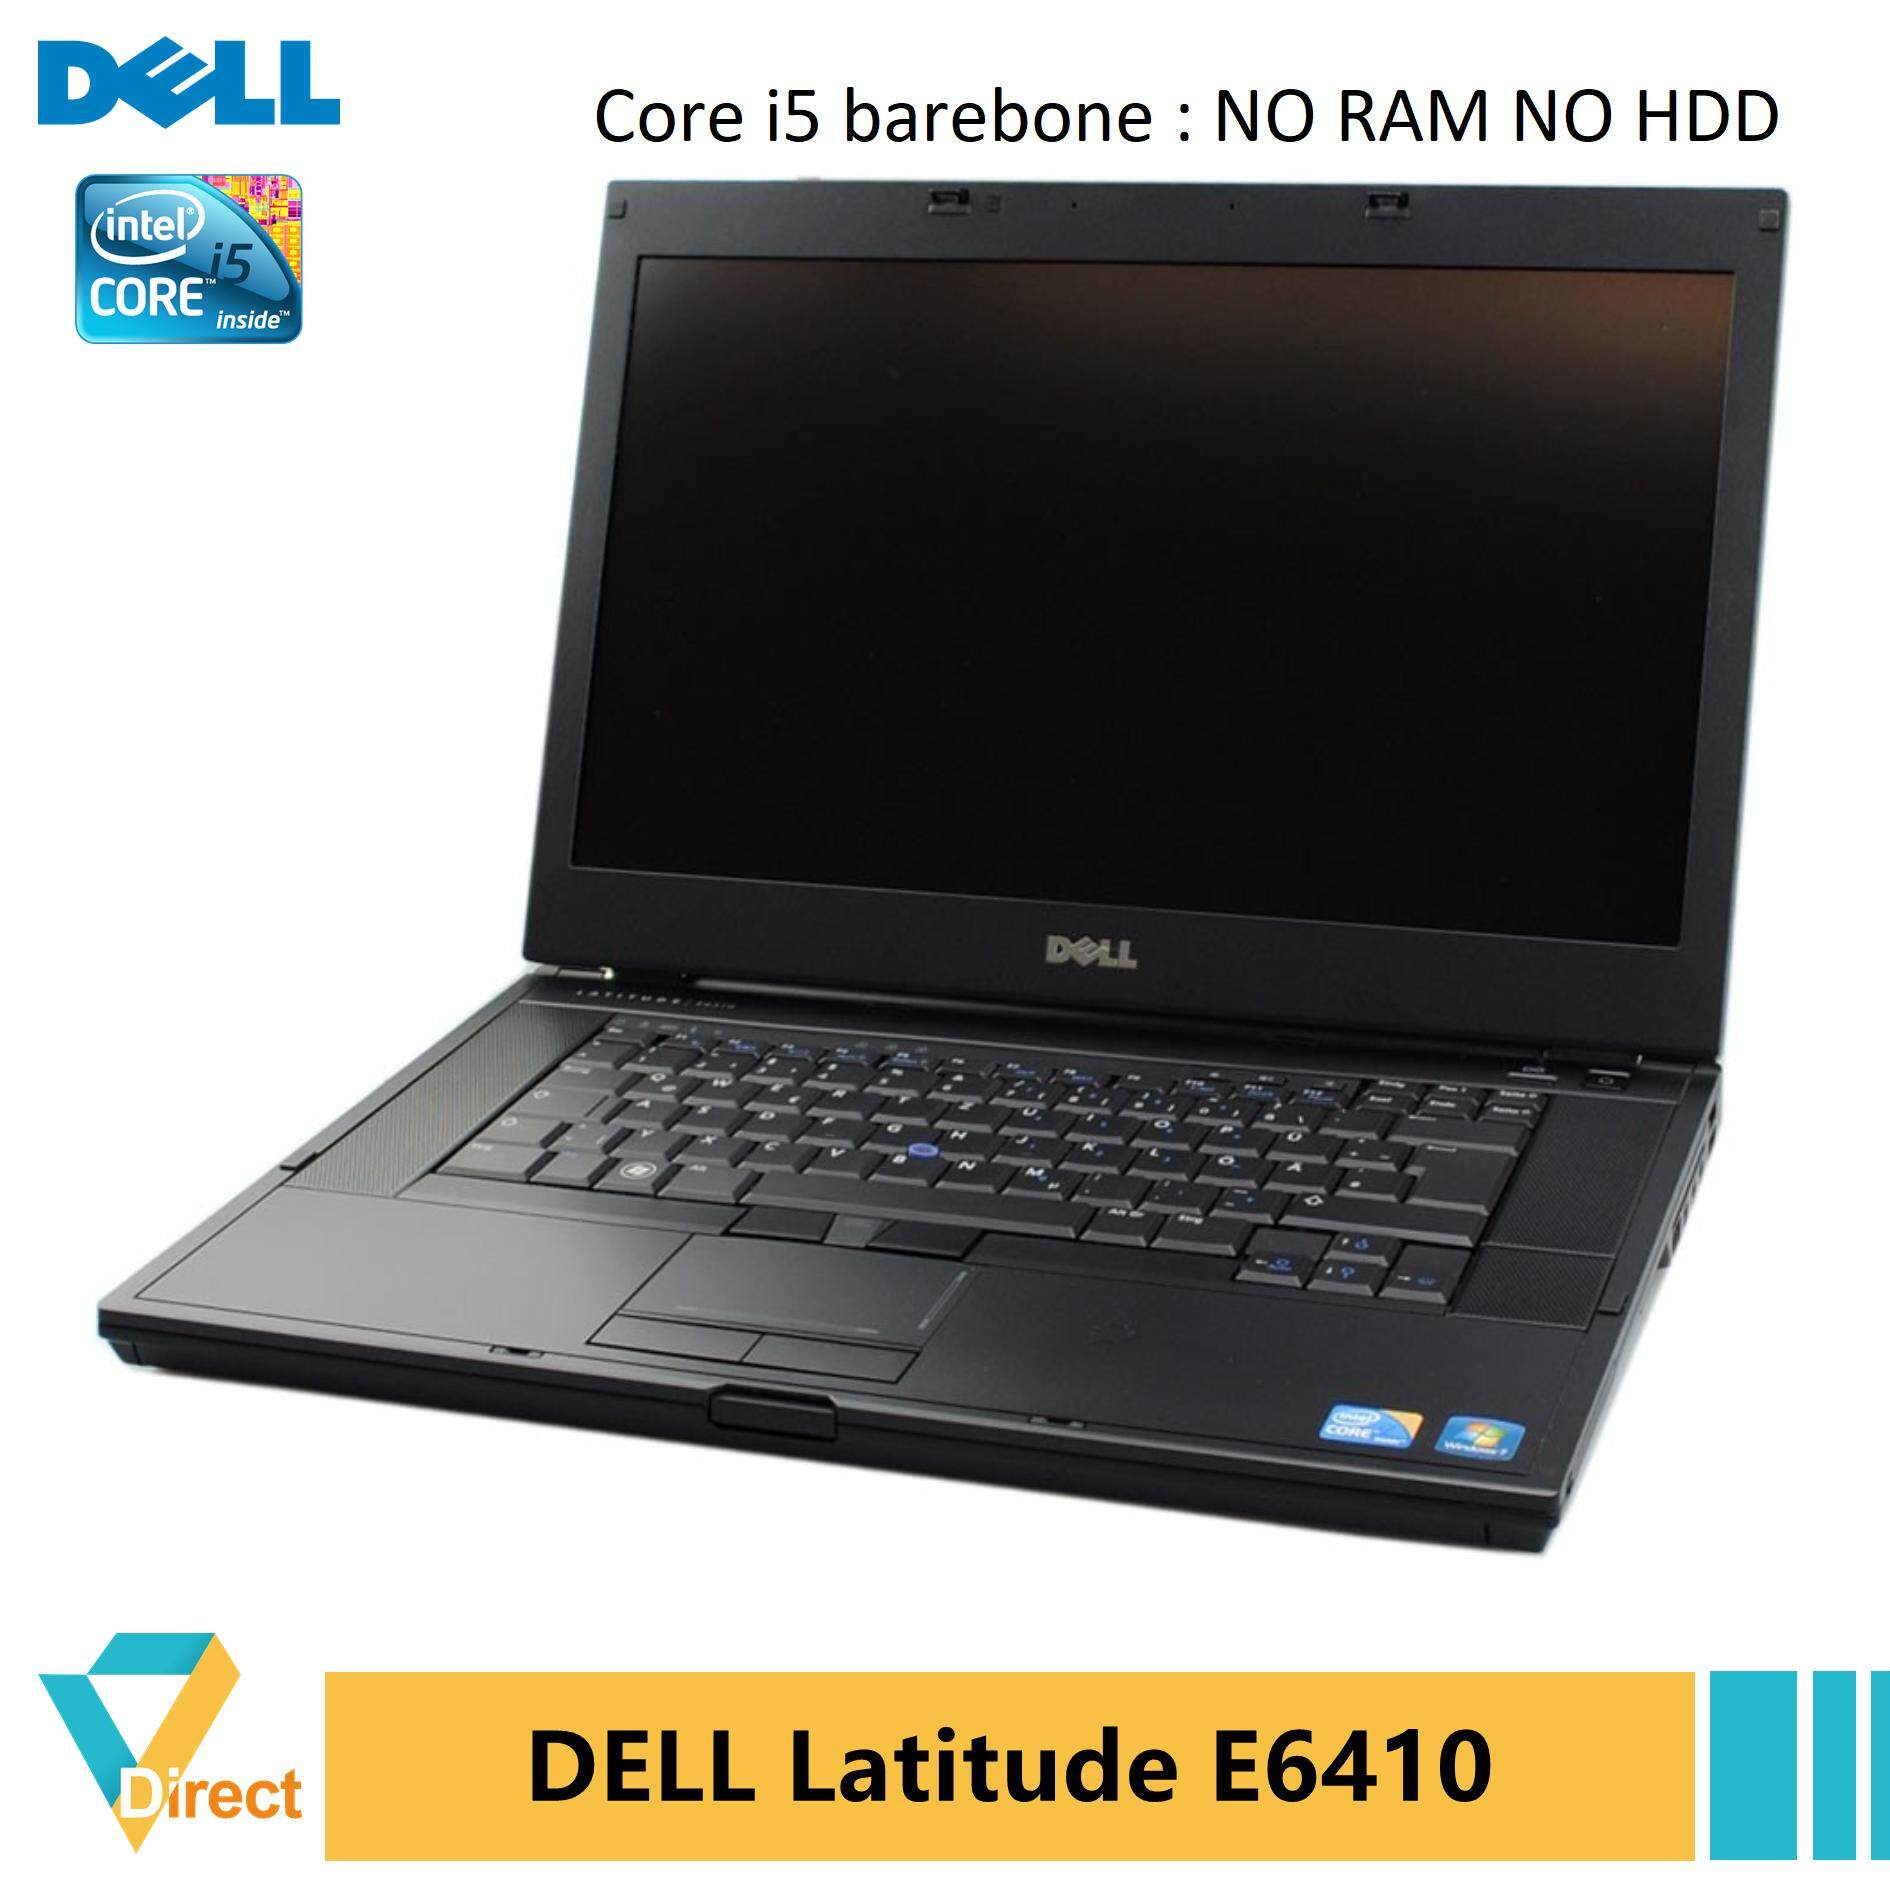 UP to 8GB RAM 960GB SSD Dell Latitude E6410 laptop PC - also 4GB 250GB 500GB HDD 120GB 240Gb 480GB FULLY refurbished Malaysia